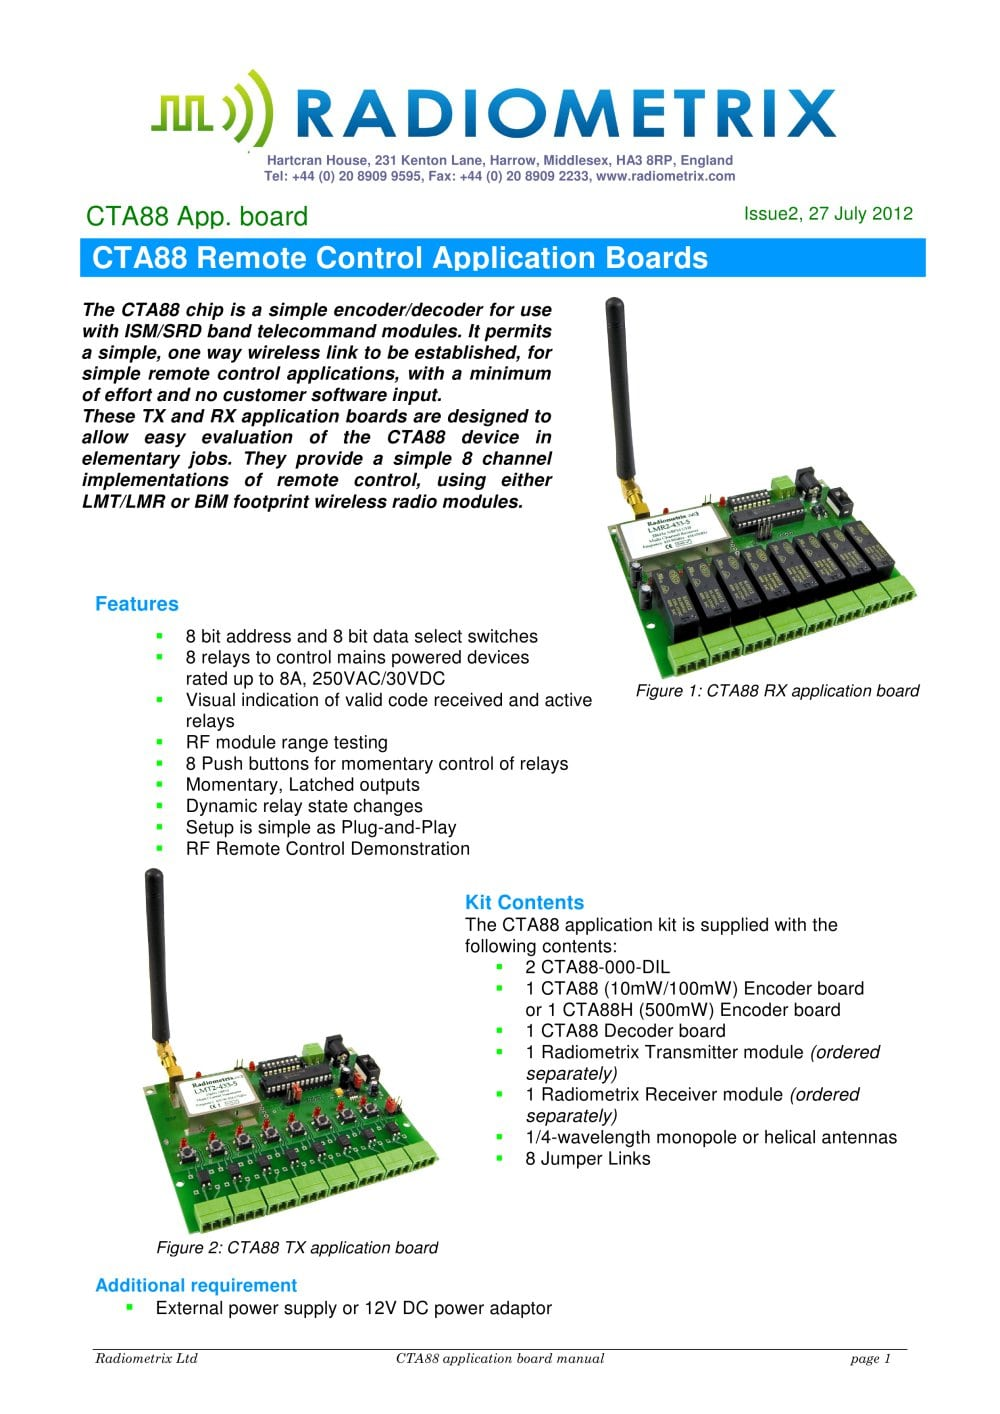 Cta88 Remote Control Application Boards Radiometrix Pdf Tester Circuit 1 16 Pages